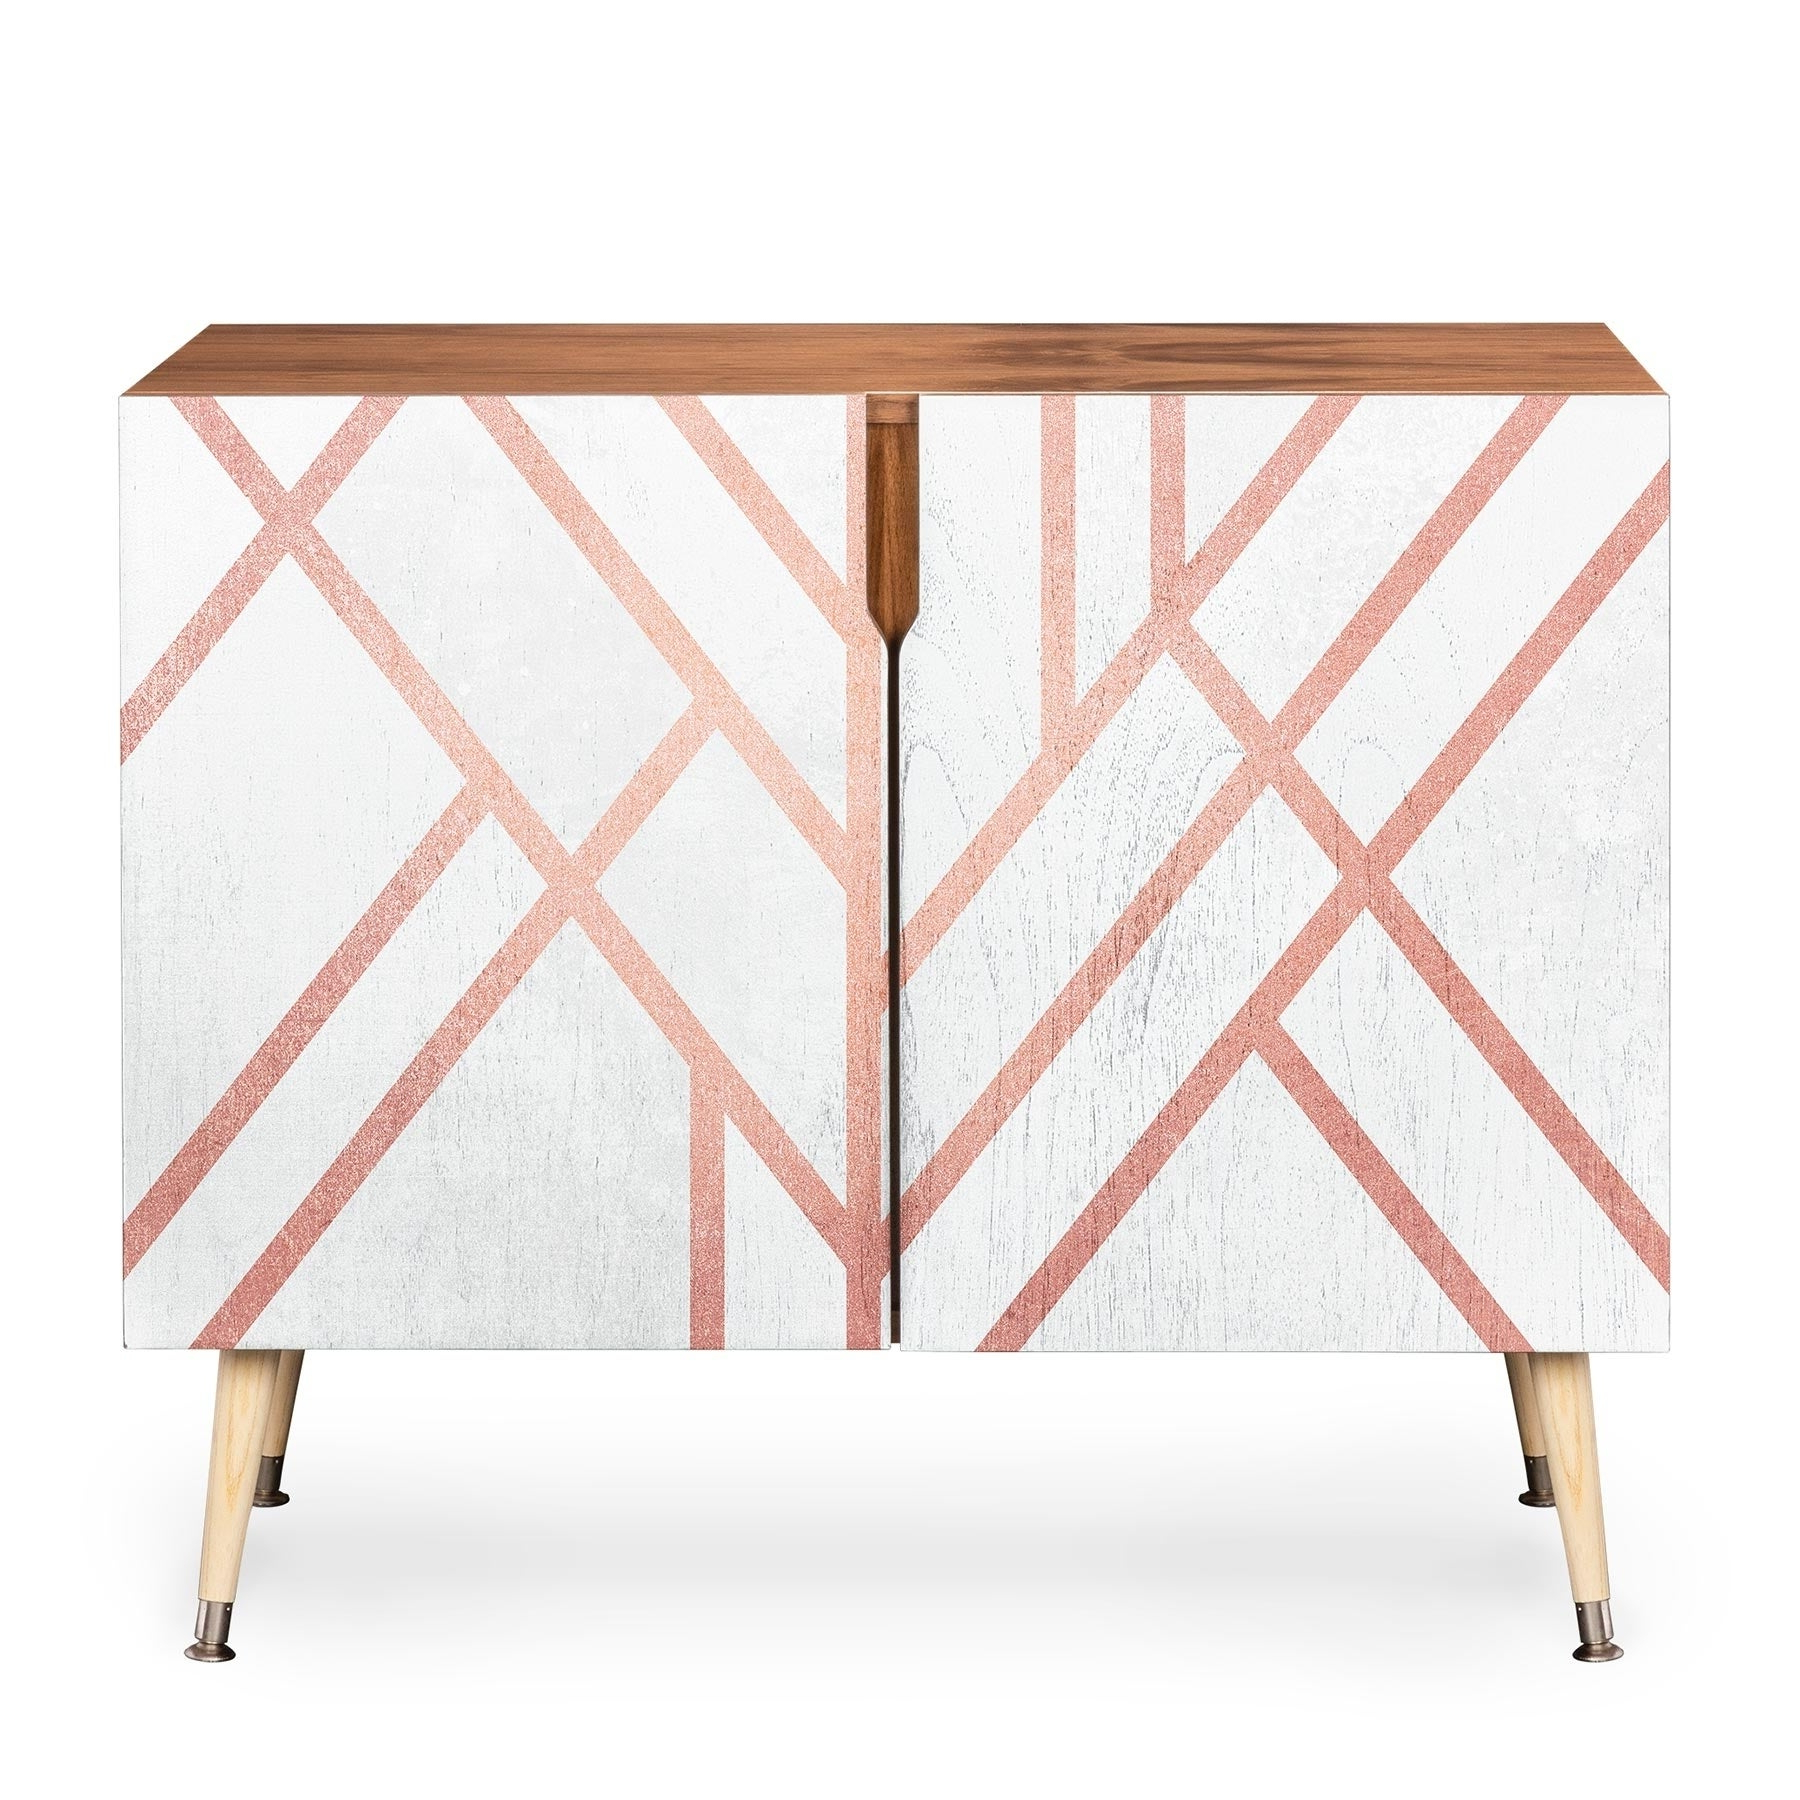 Deny Designs Pink And White Geometric Credenza (birch Or Walnut, 3 Leg Options) With Wooden Deconstruction Credenzas (View 11 of 20)